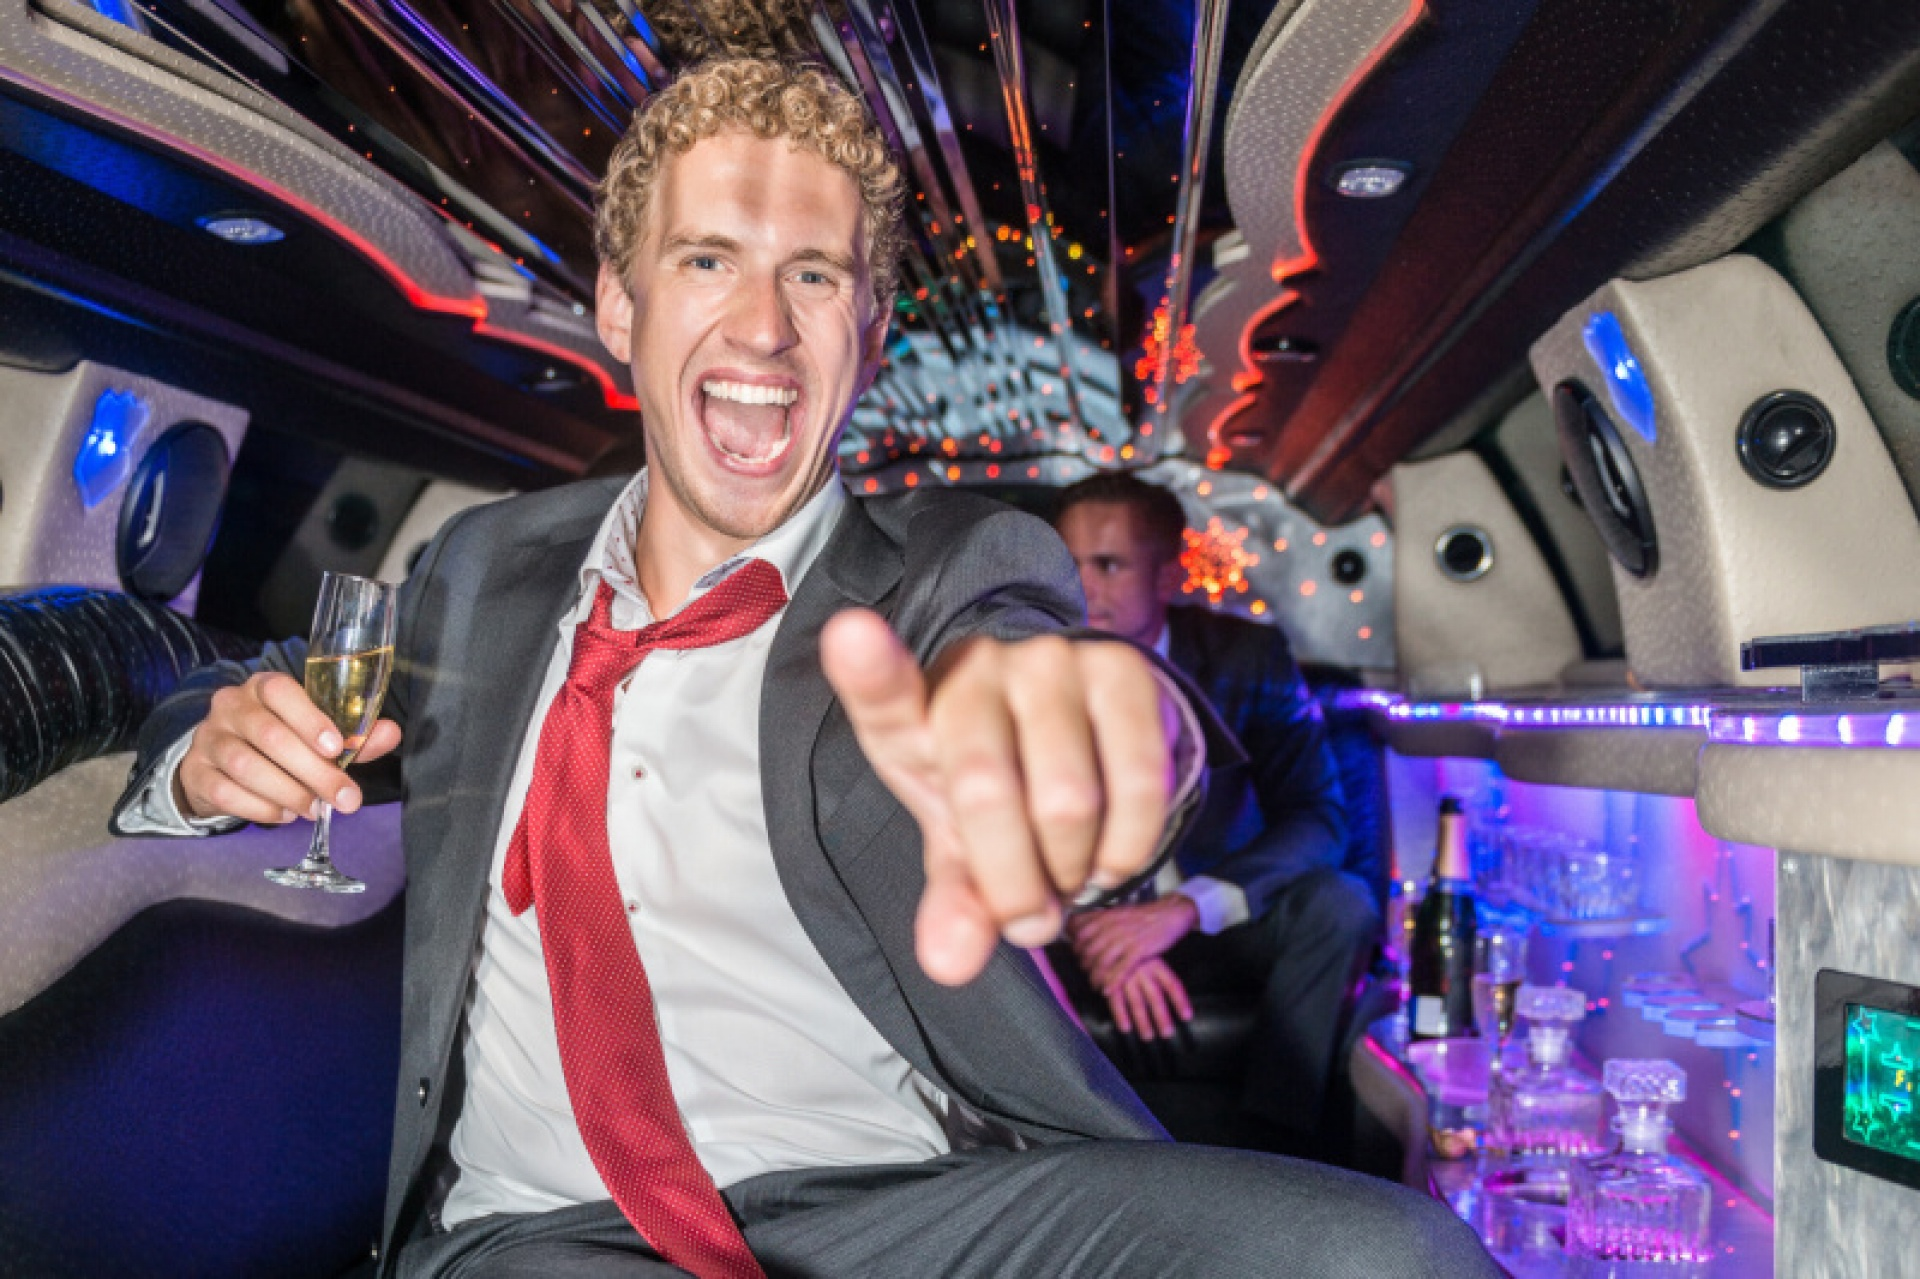 man partying in a limousine